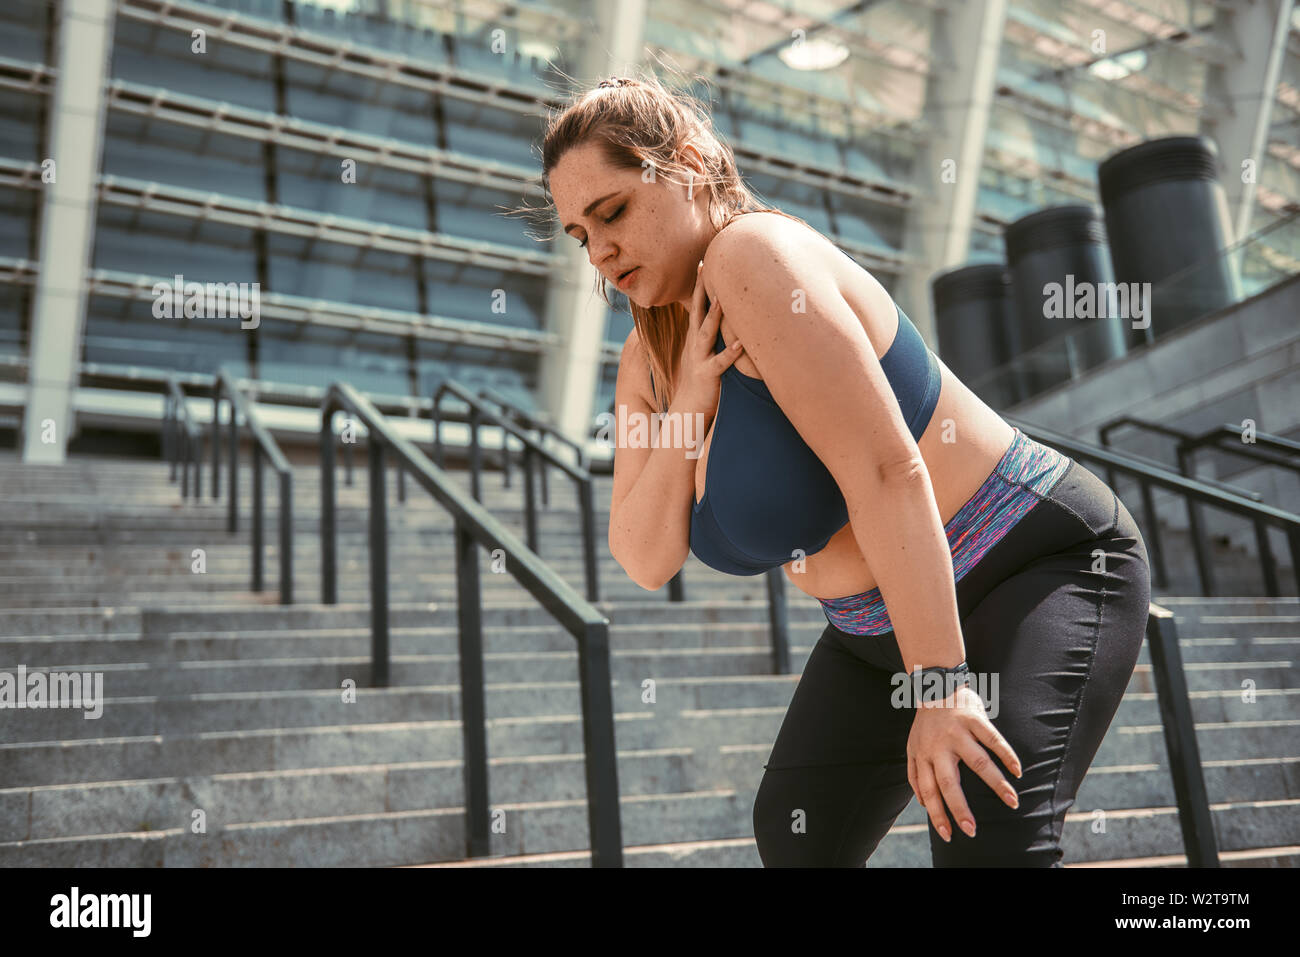 Pain after workout. Young plus size woman touching her shoulder and feeling pain after sport training while standing on stairs. Sports injury. Weight - Stock Image